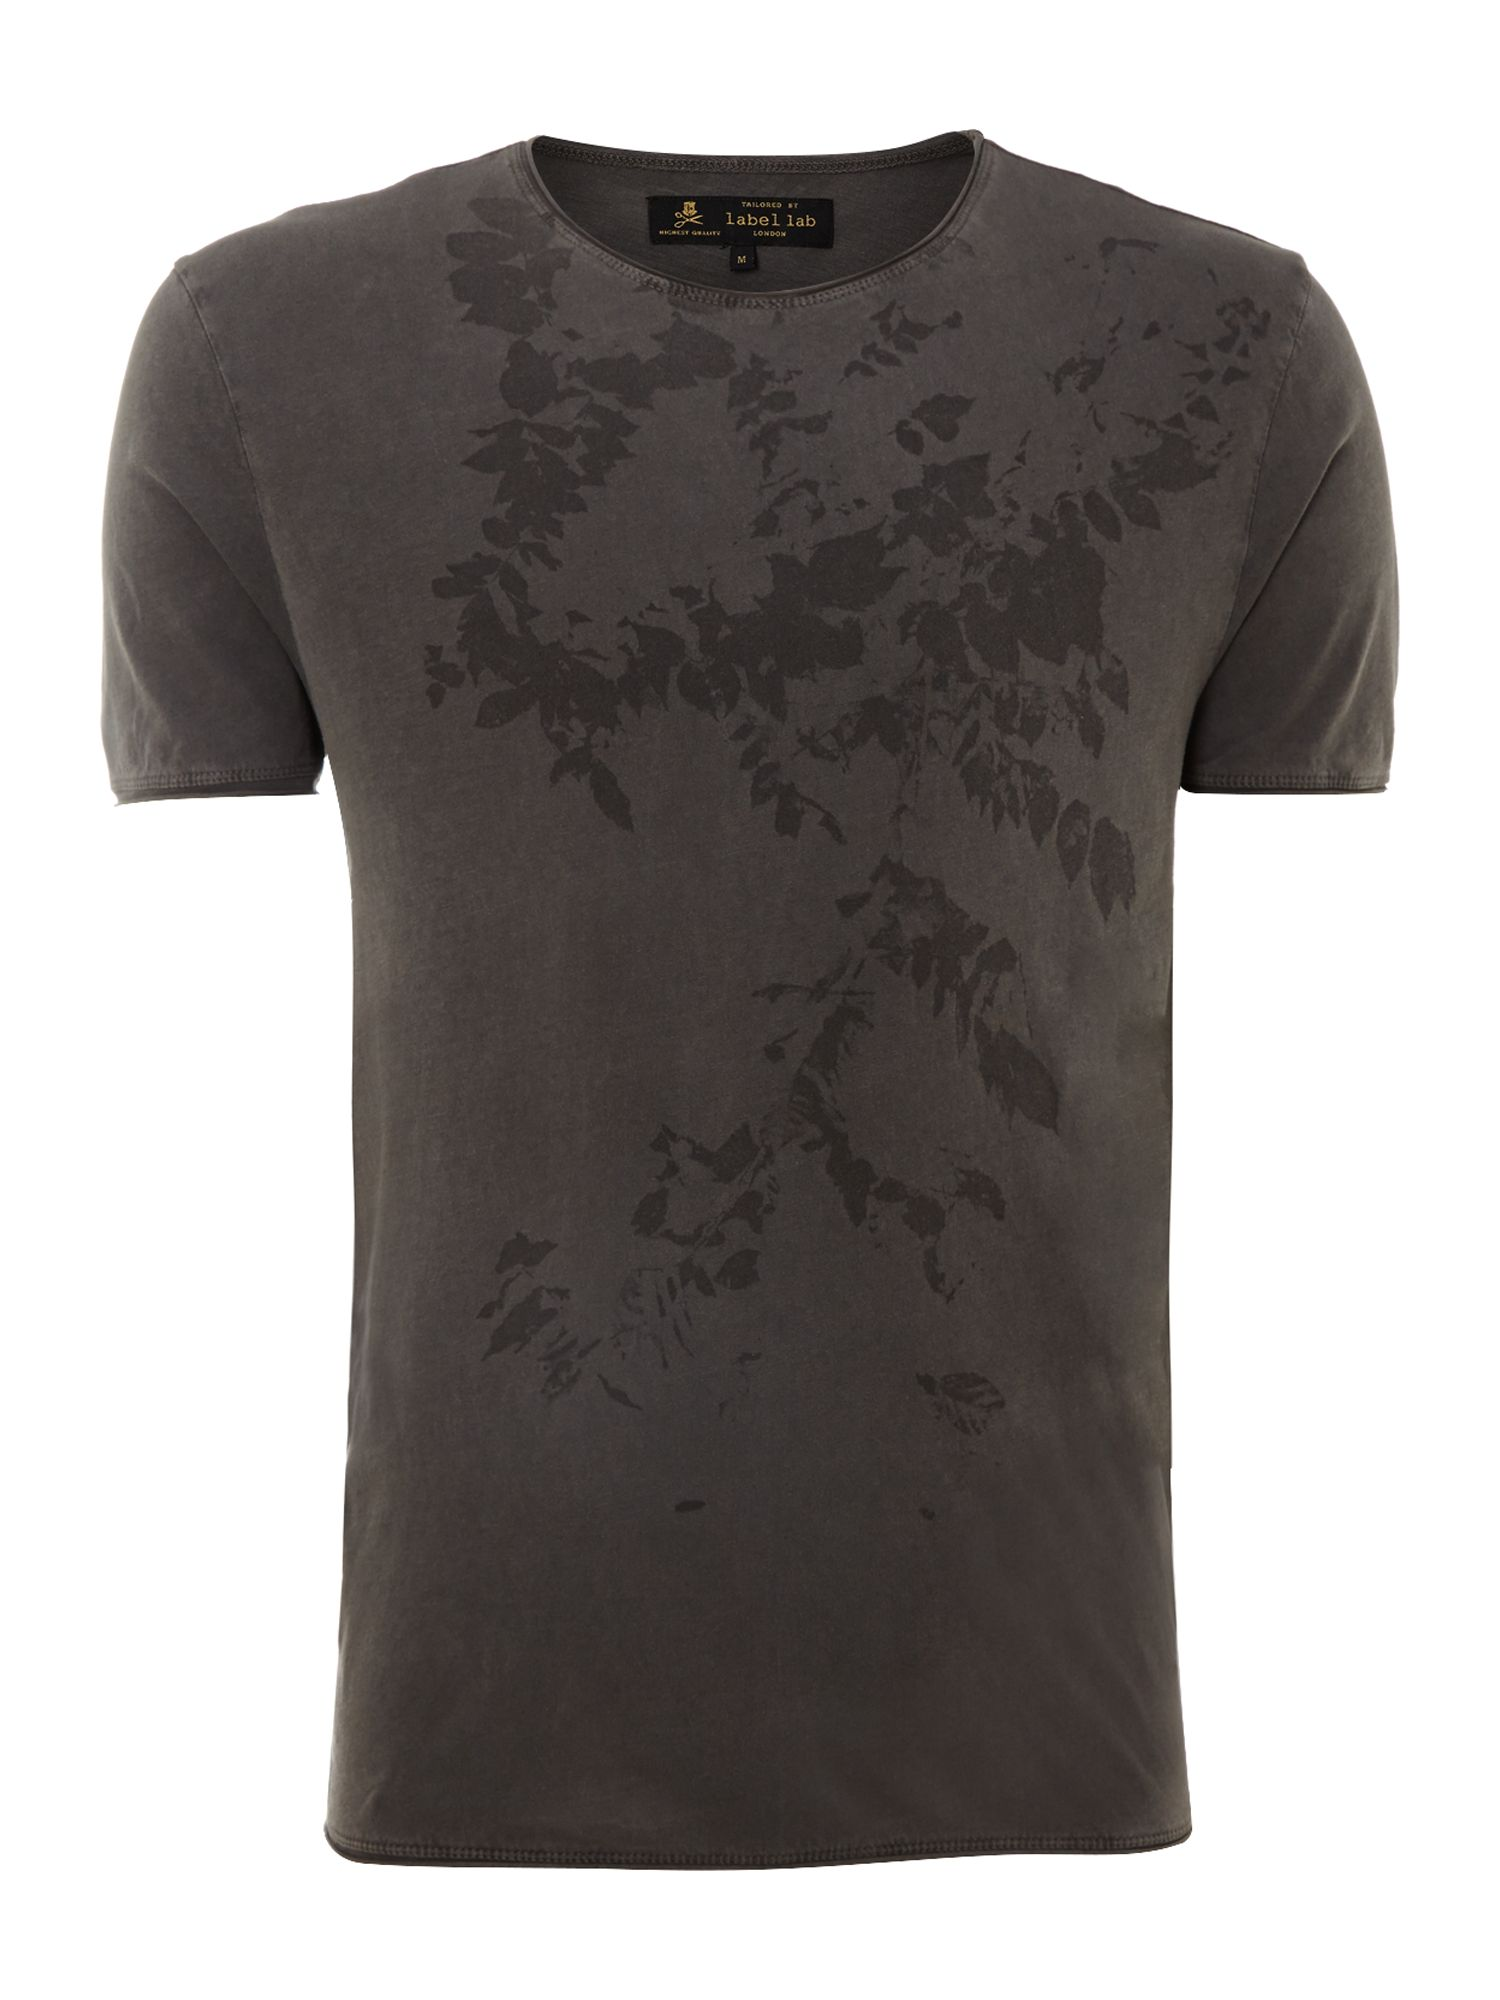 Leaves print graphic t-shirt